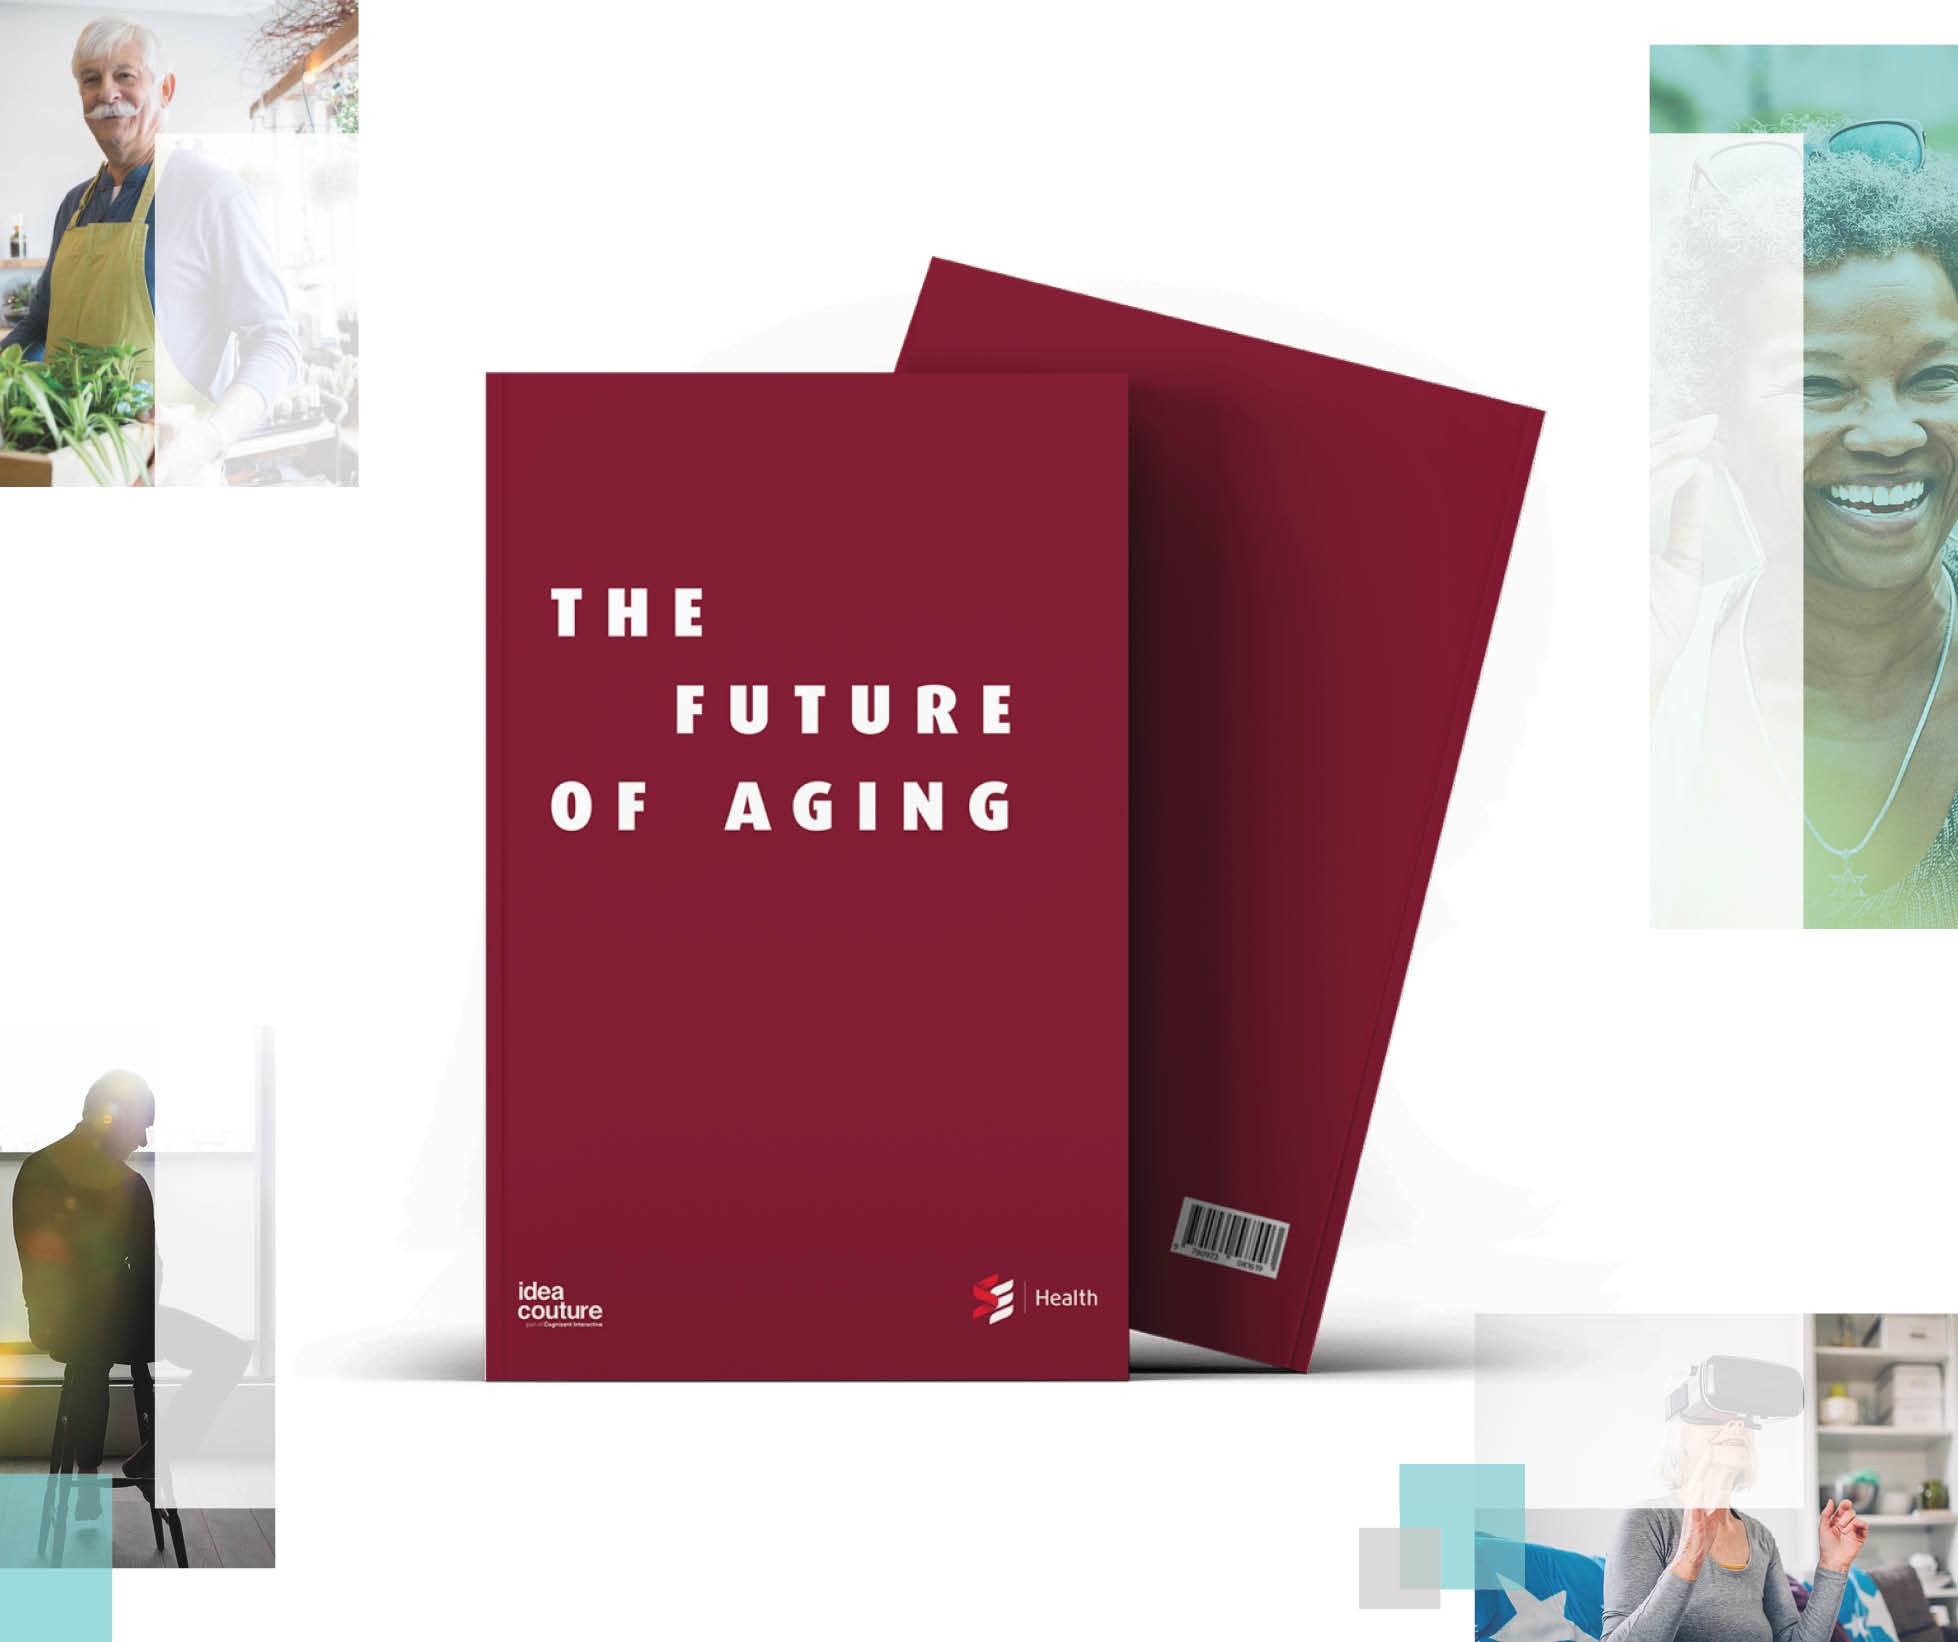 Se Health And Idea Couture Pen Provocative Publication That Puts People First The Future Of Aging